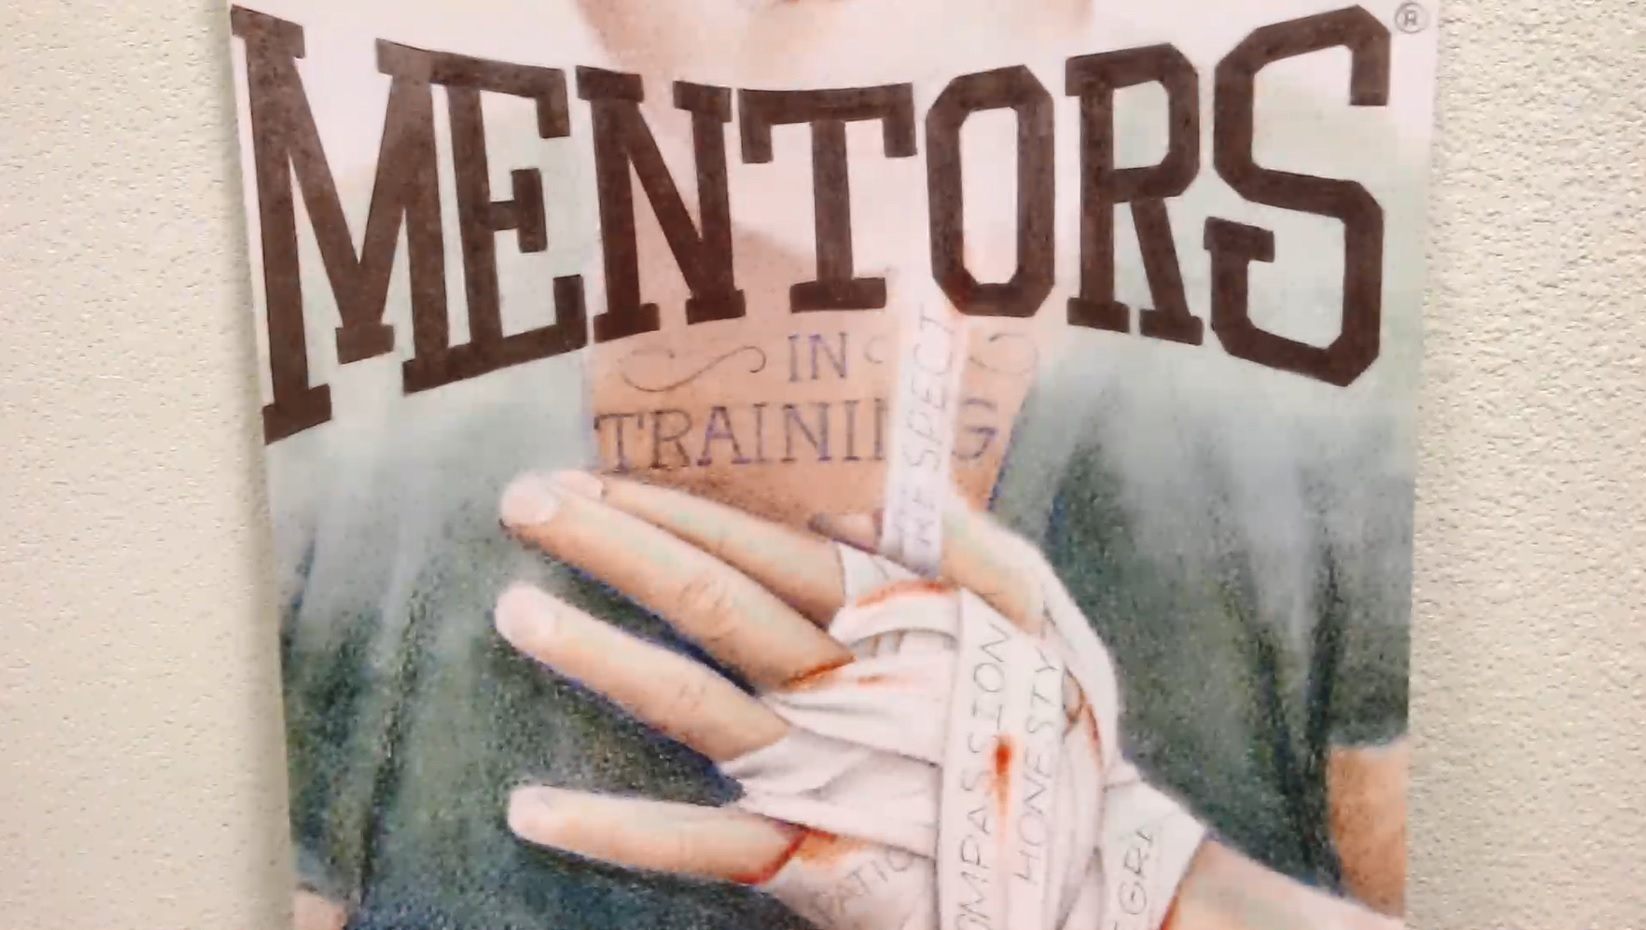 A posted showing a bandaged hand and the words Mentors in Training.